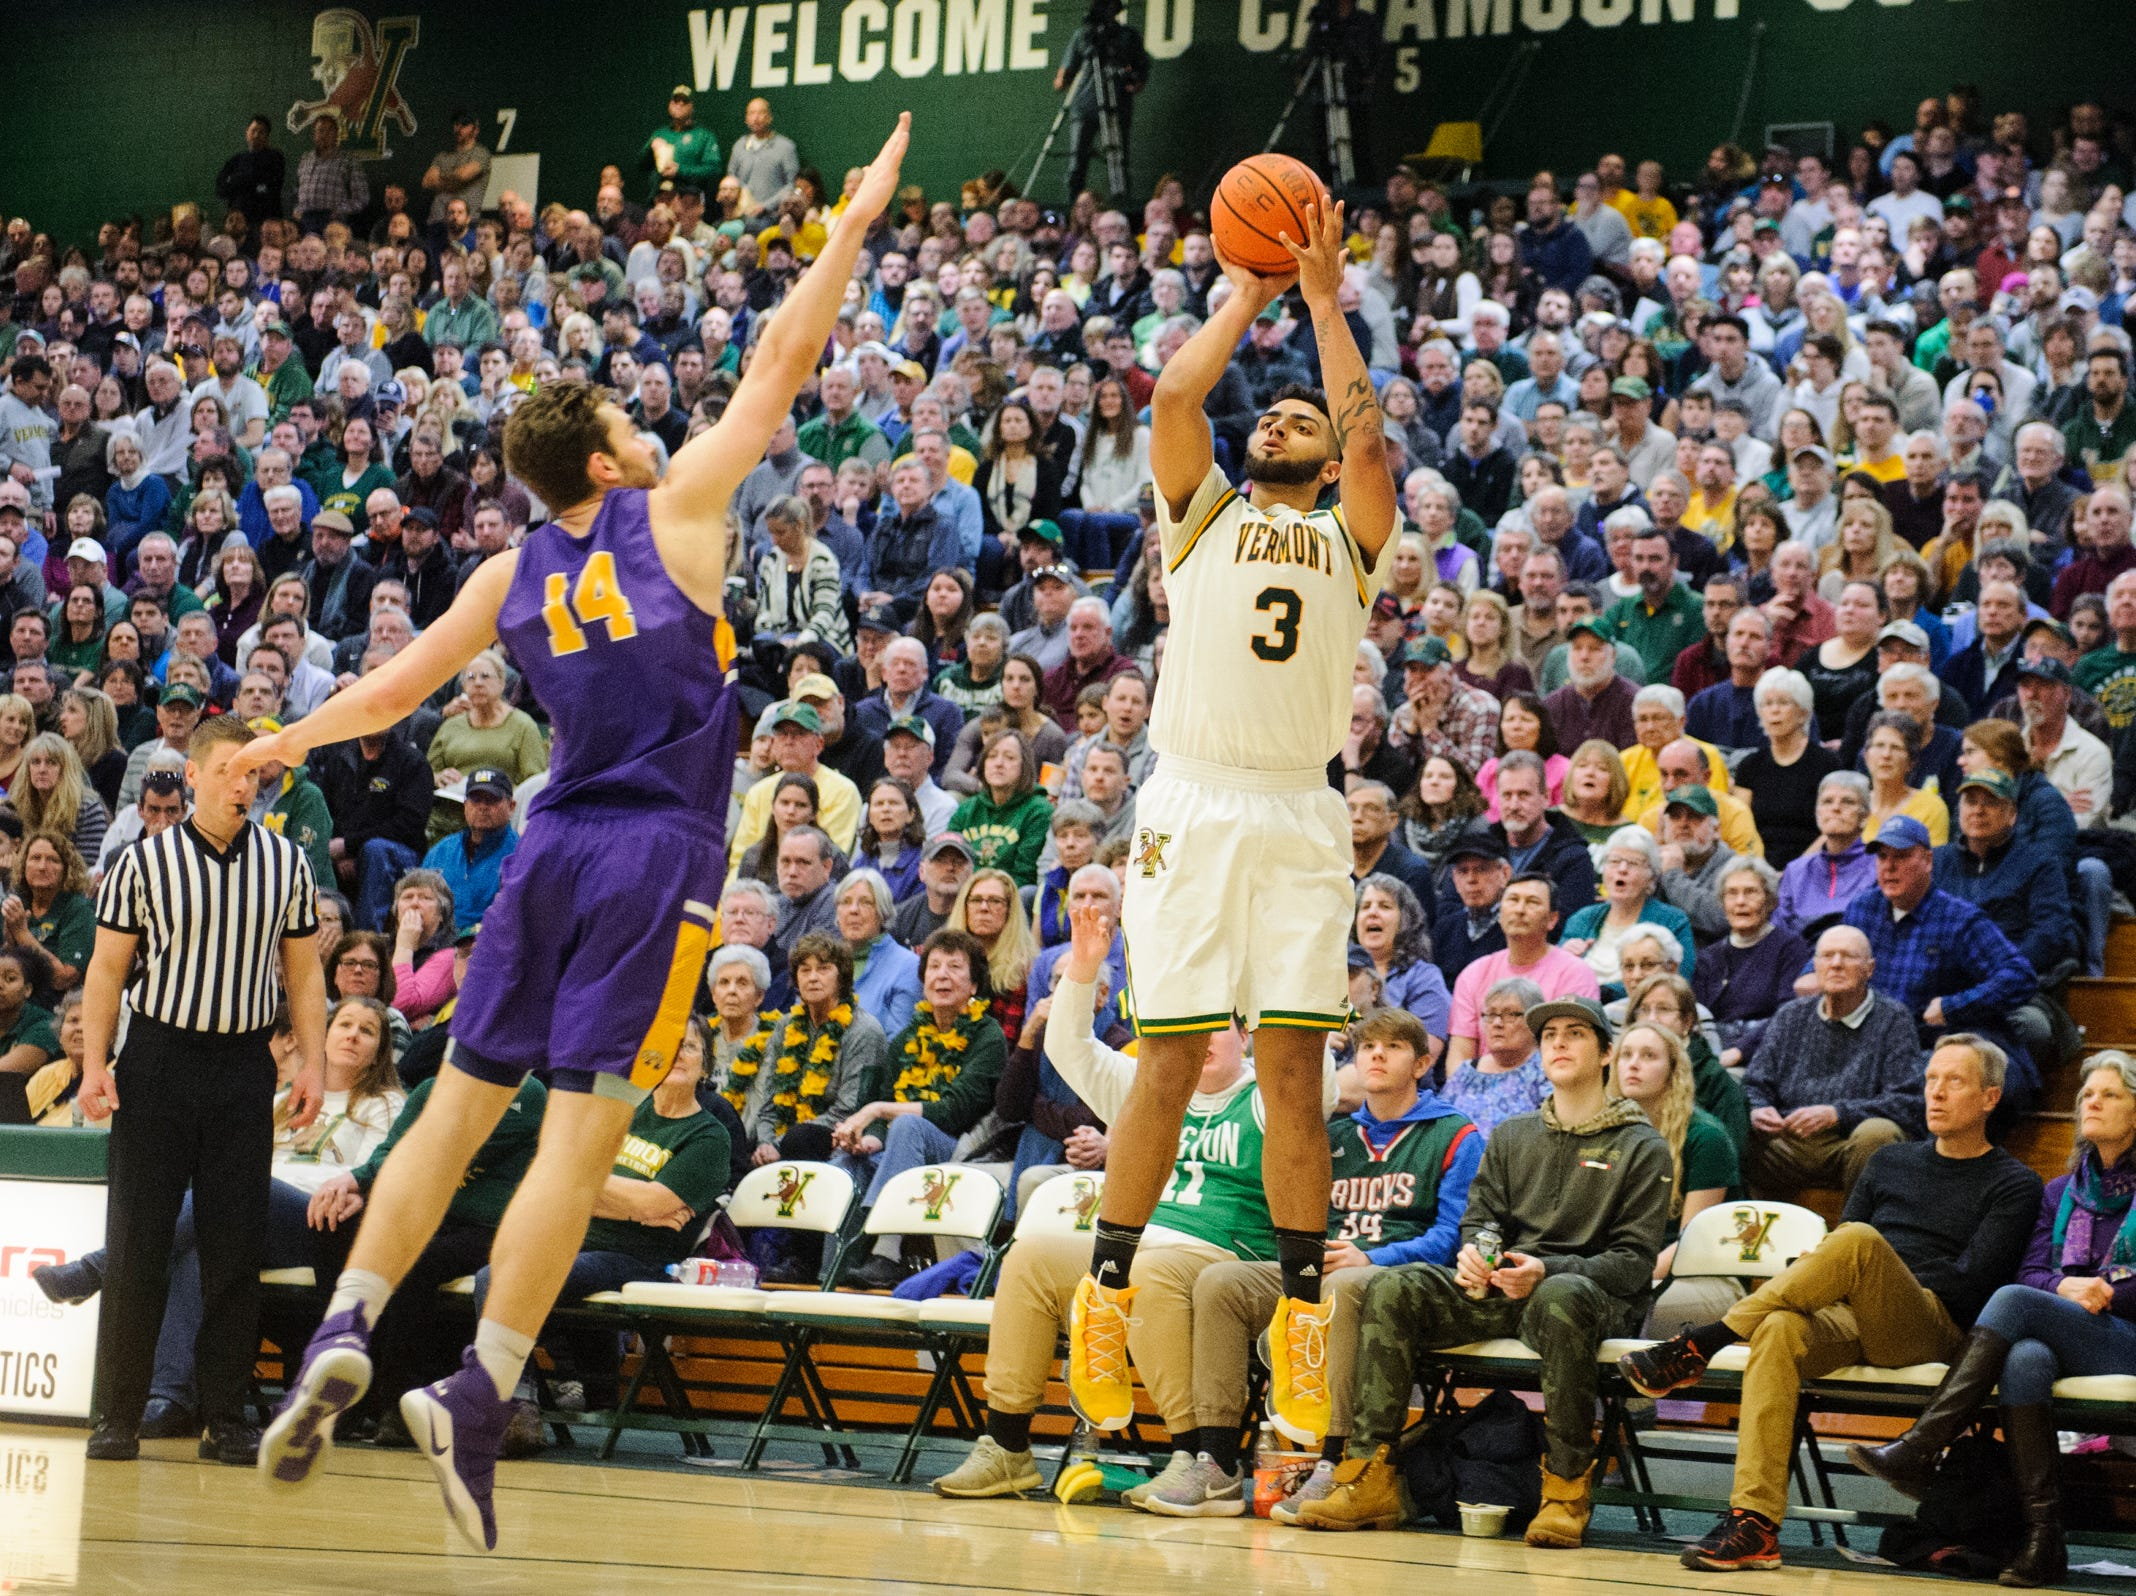 Vermont forward Anthony Lamb (3) shoots a three pointer over Albany's Adam Lulka (14) during the men's basketball game between the Albany Great Danes and the Vermont Catamounts at Patrick Gym on Saturday February 9, 2019 in Burlington, Vermont.